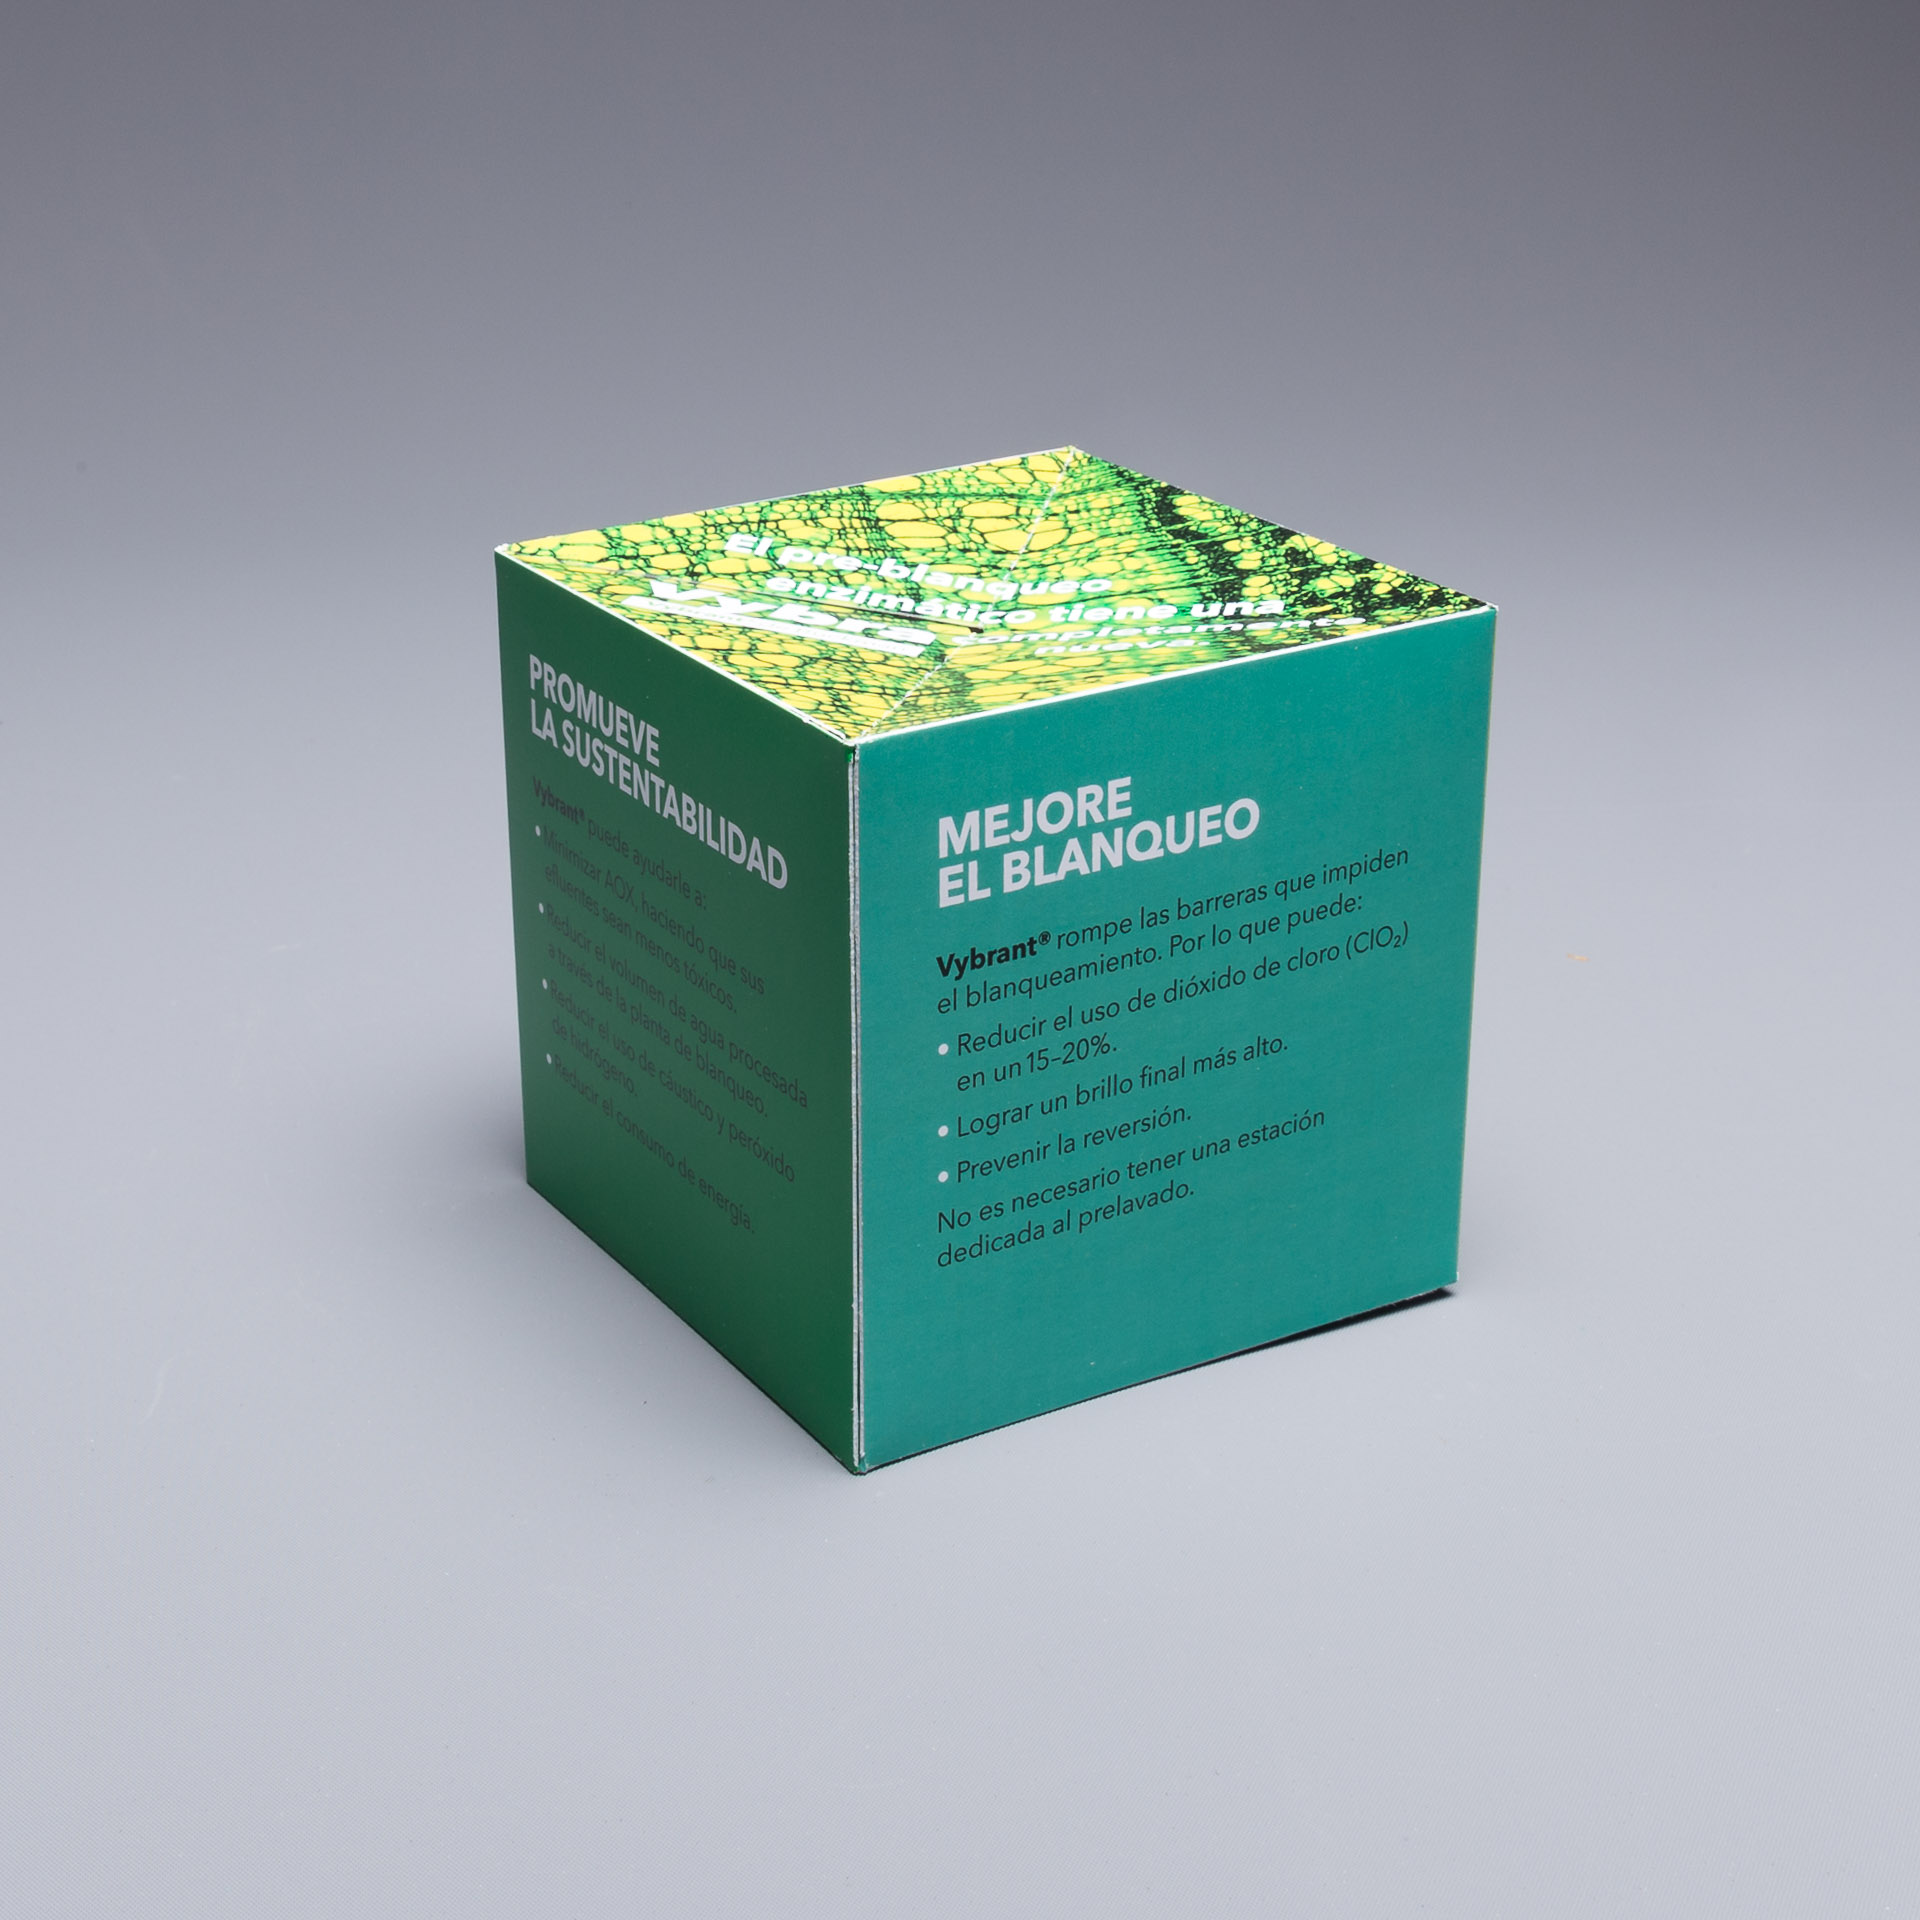 "Buckman International uses 4.25"" Pop Up Cube for Latest Promotional Offering"